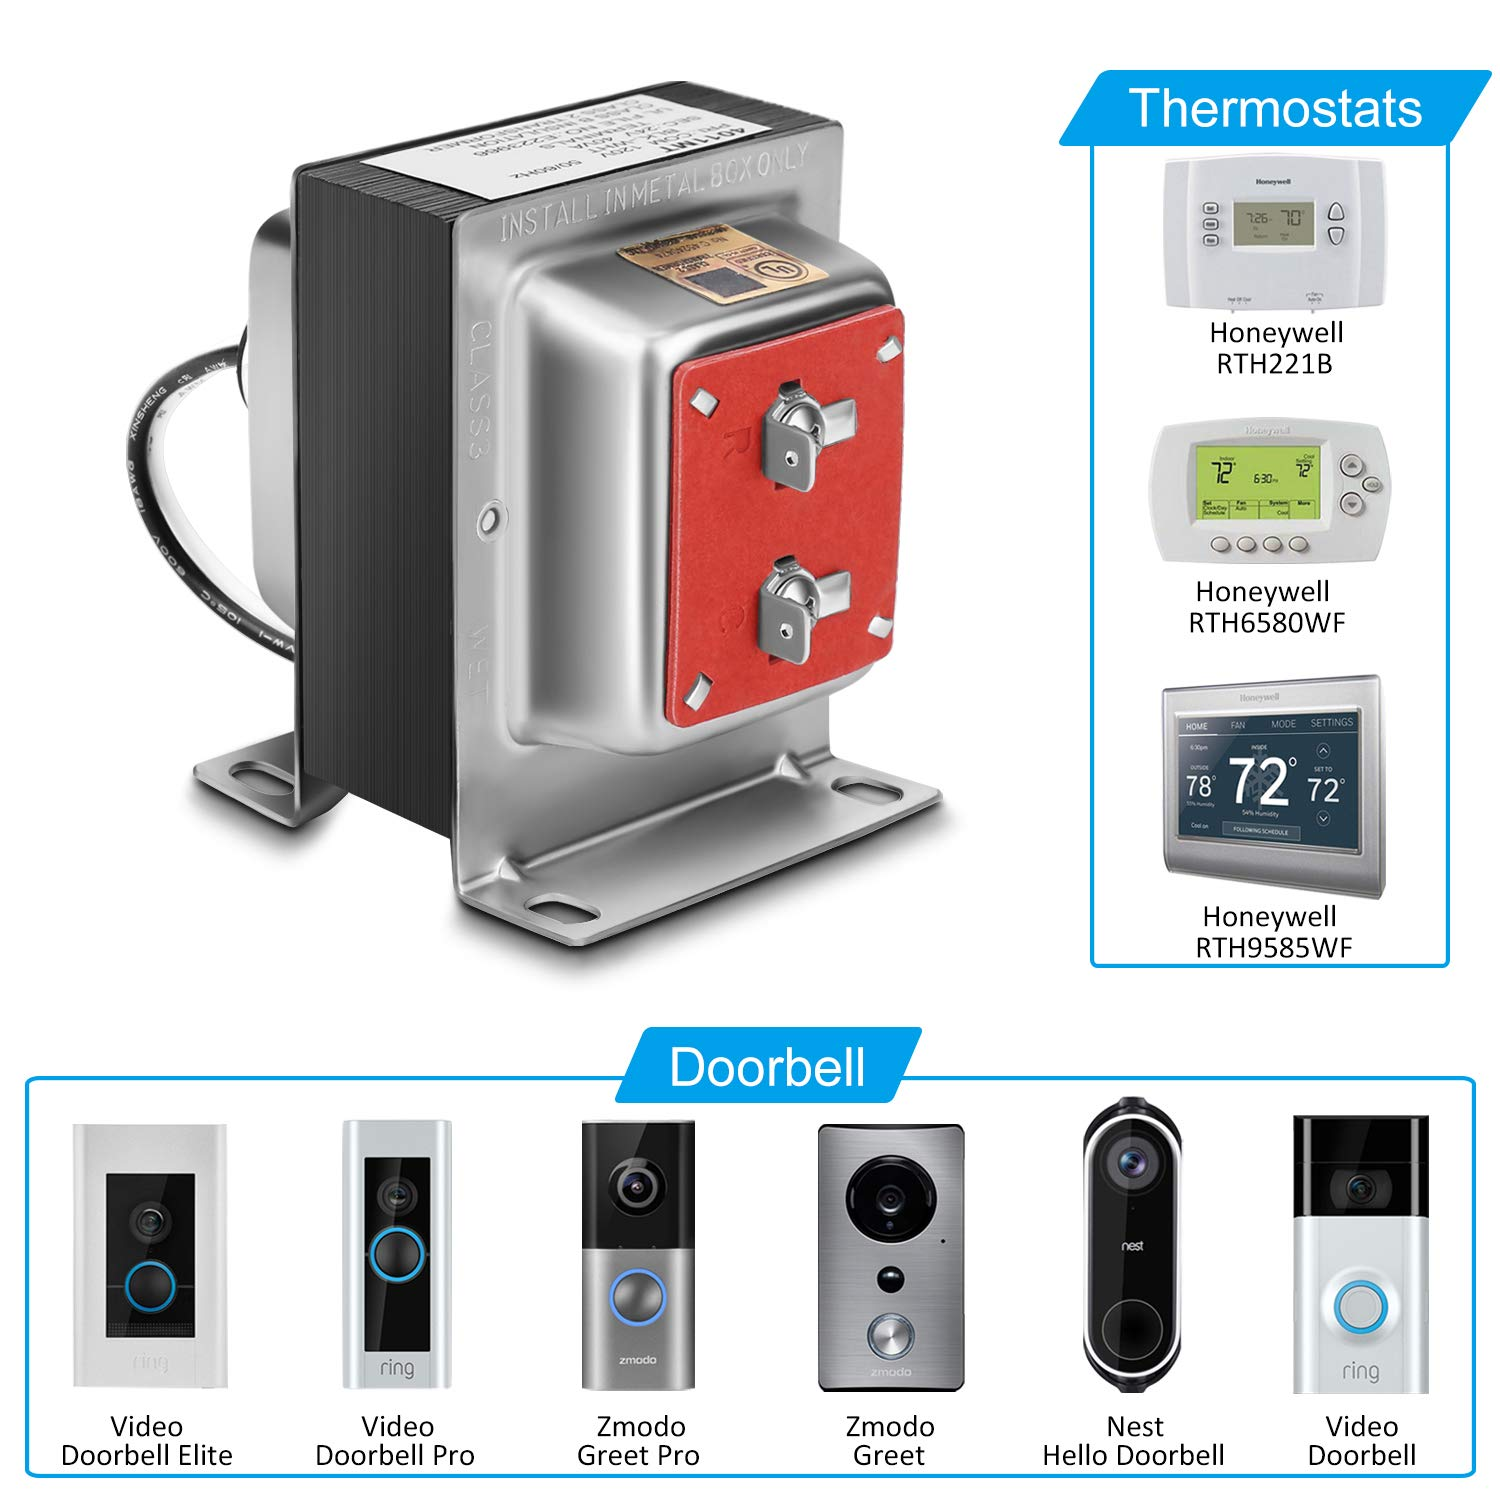 24V 40VA Thermostat and Doorbell Transformer, Power Supply Compatible with Honeywell Thermostat, Nest Hello Doorbell and All Versions of Ring Doorbell